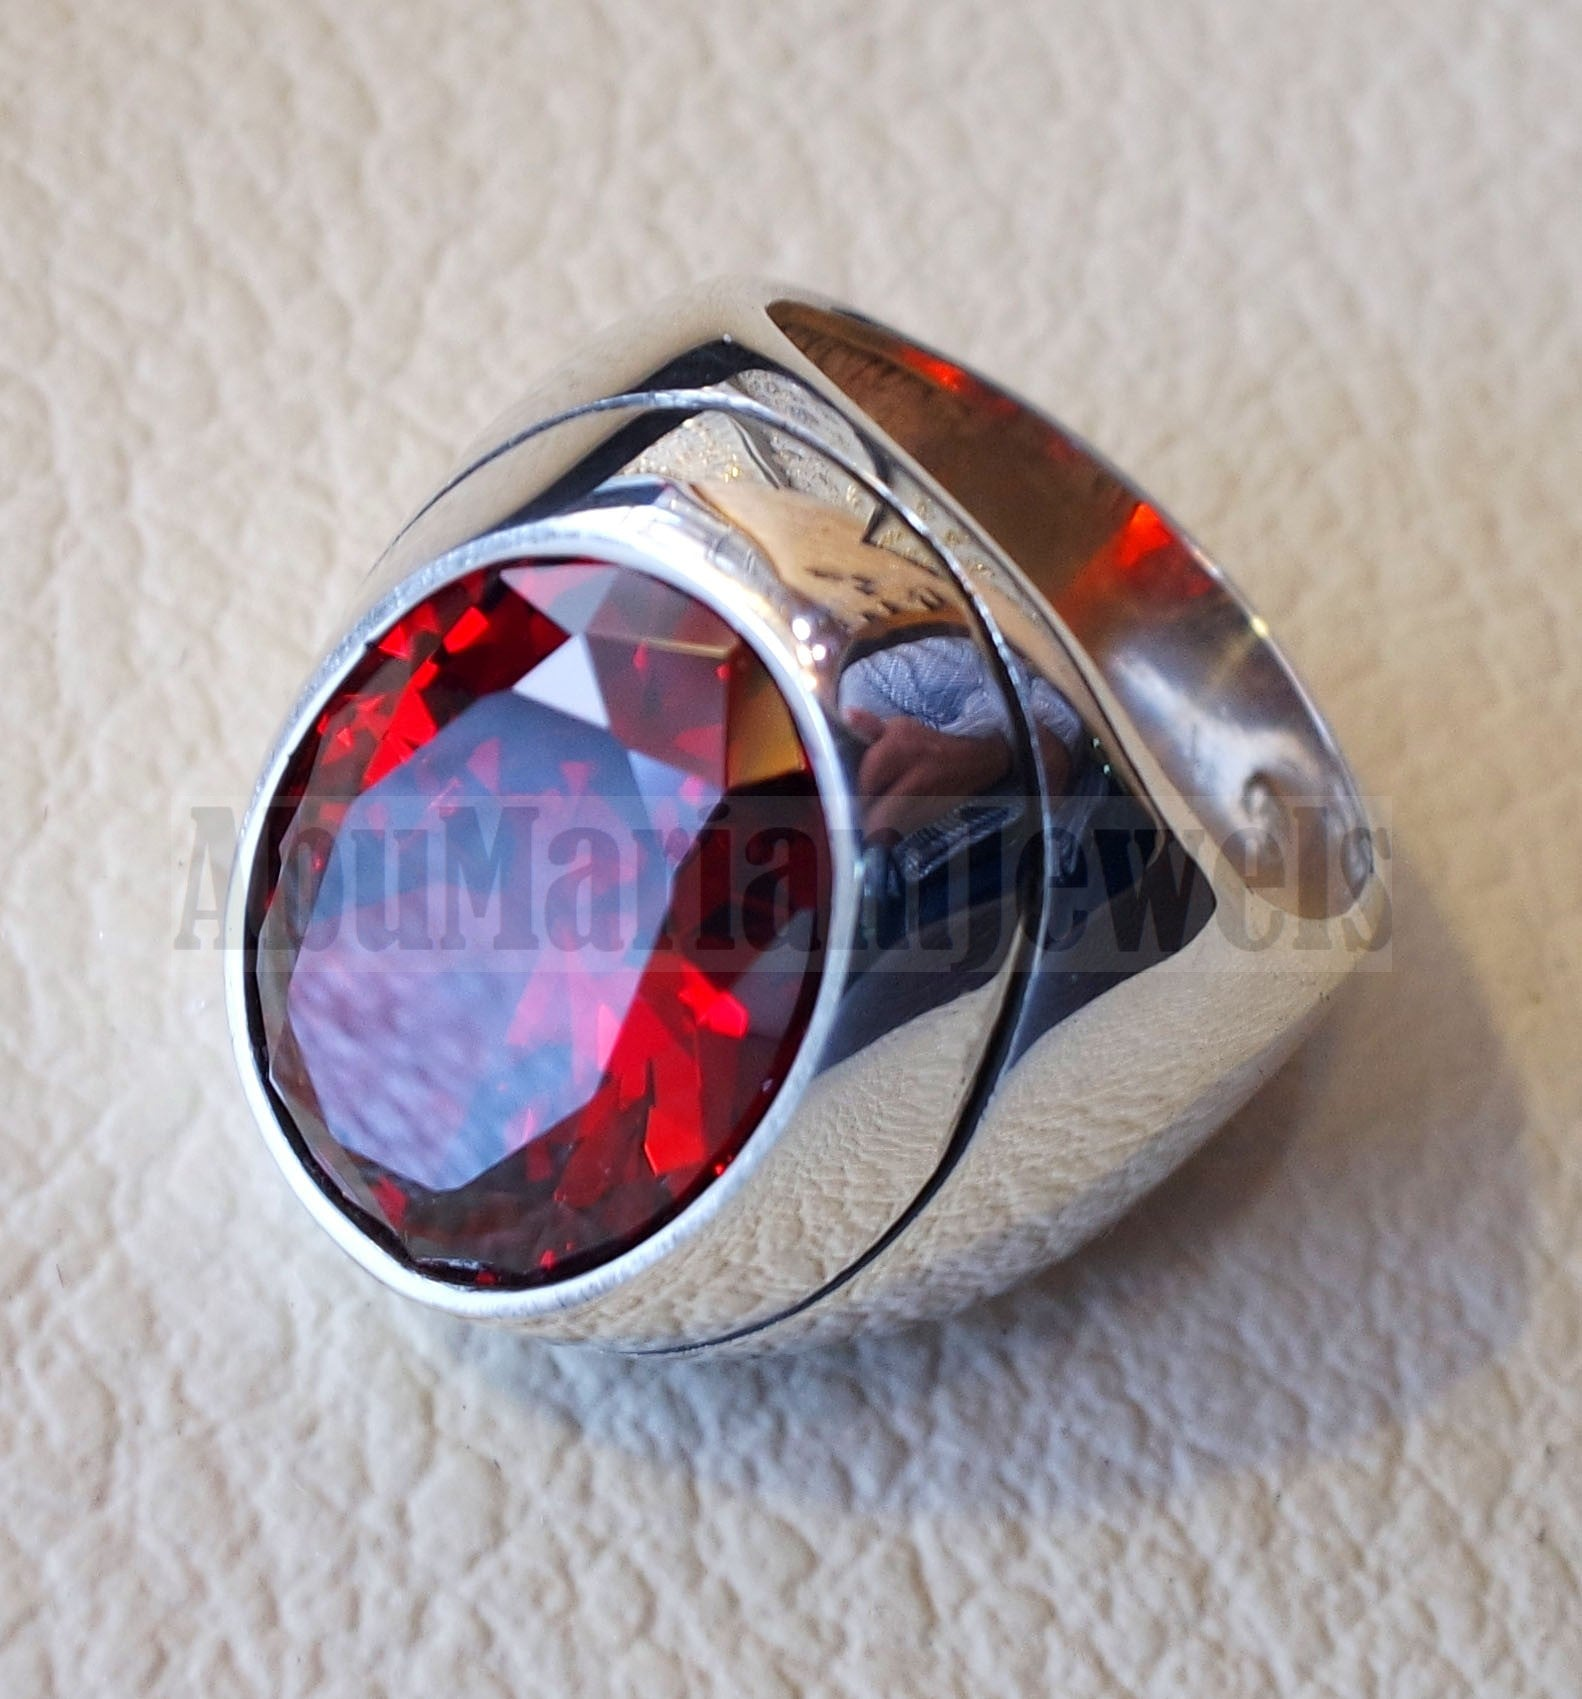 garnet identical synthetic stone high quality cubic zircon red color huge heavy men ring sterling silver 925 any size ottoman jewelry